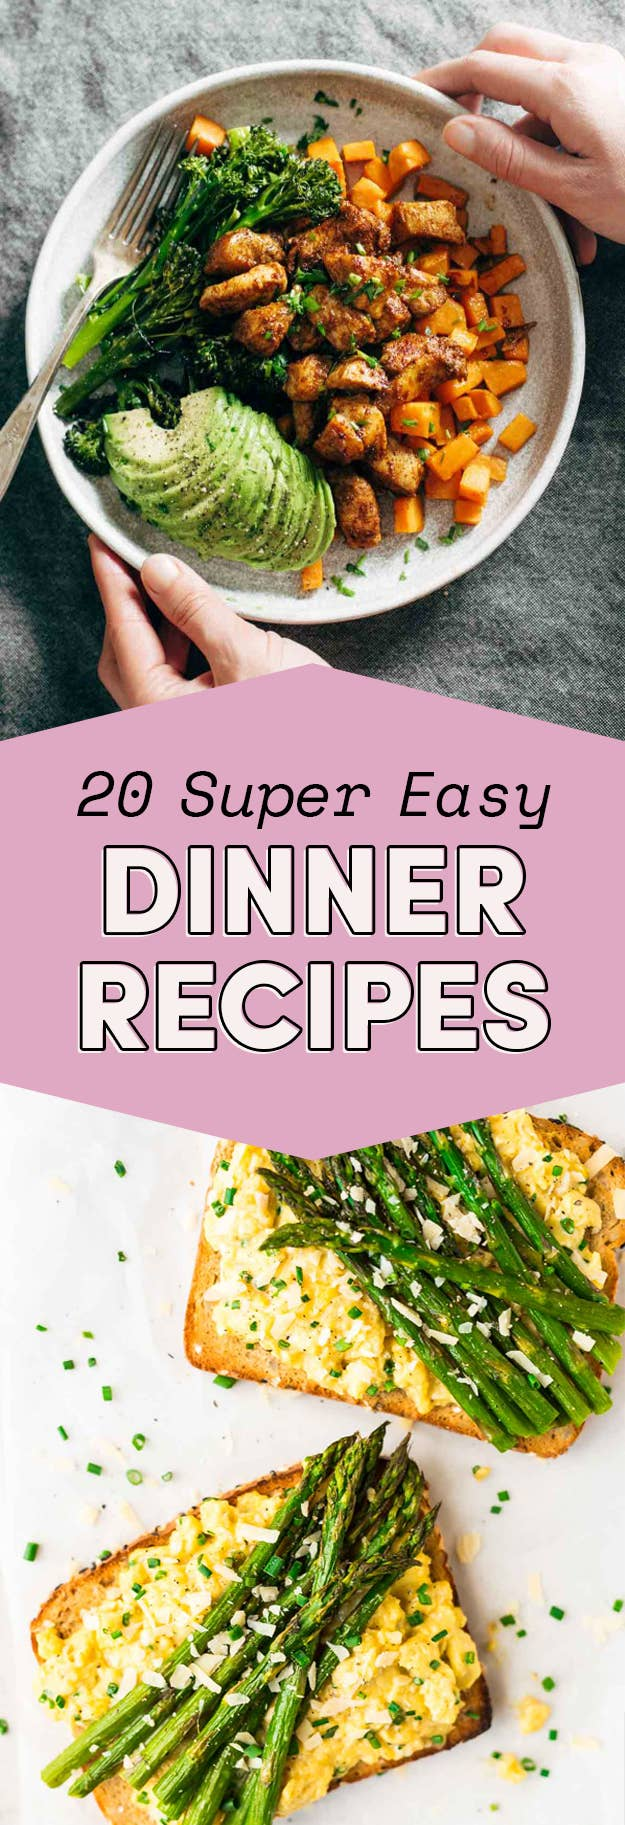 20 easy dinner ideas for when youre not sure what to make zo burnett buzzfeed forumfinder Image collections